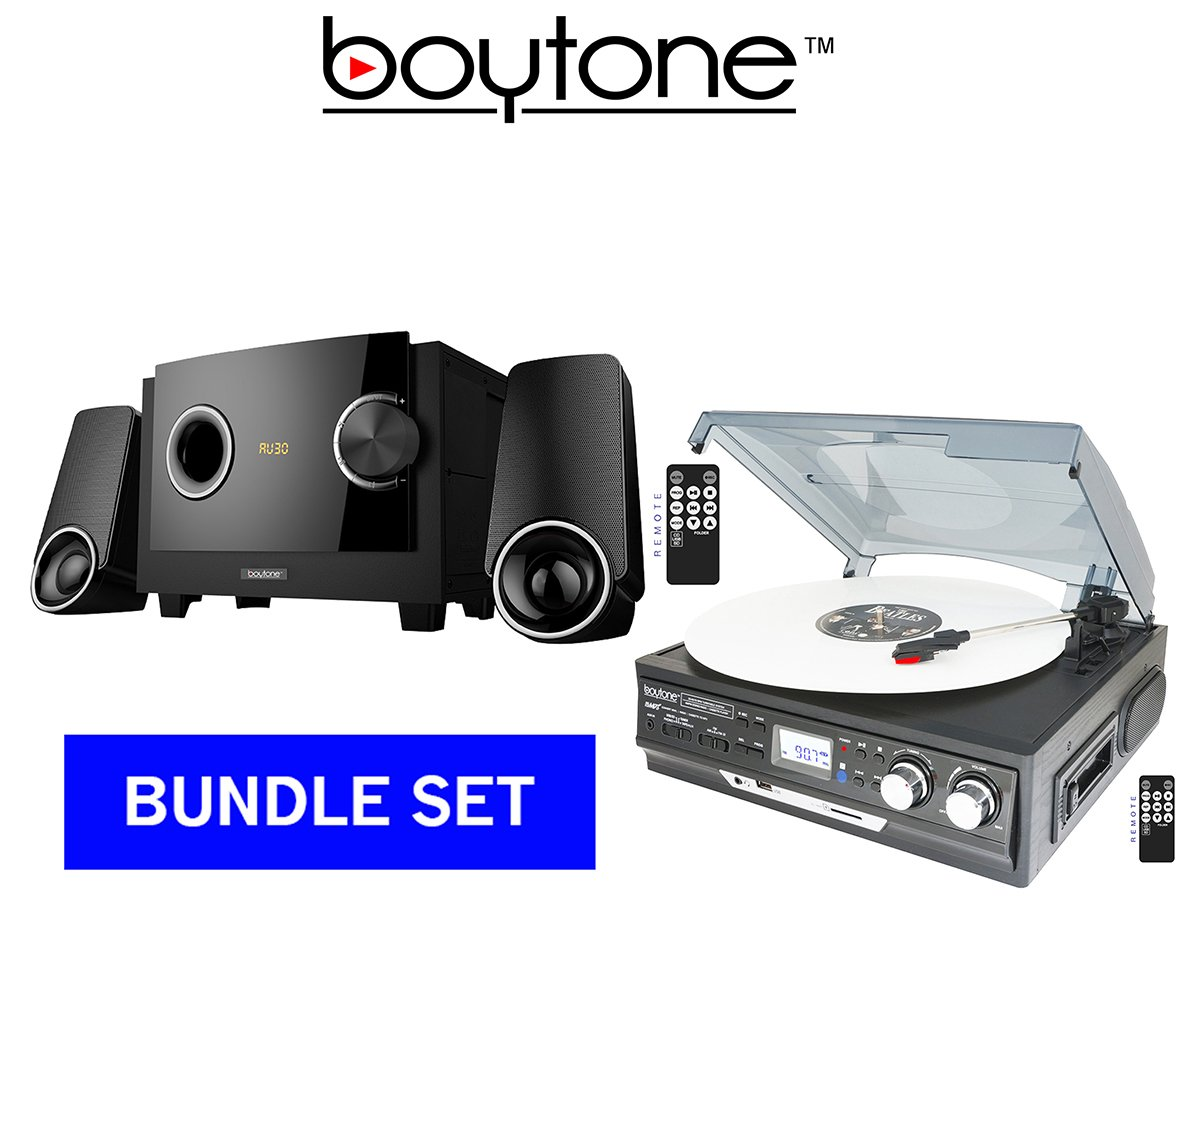 BOYTONE PREMUIM SOUND SYSTEM BUNDLE SET, Turntable Plus 2.1 multimedia Bluetooth speaker (BT-17DJB-C & BT-3129F)